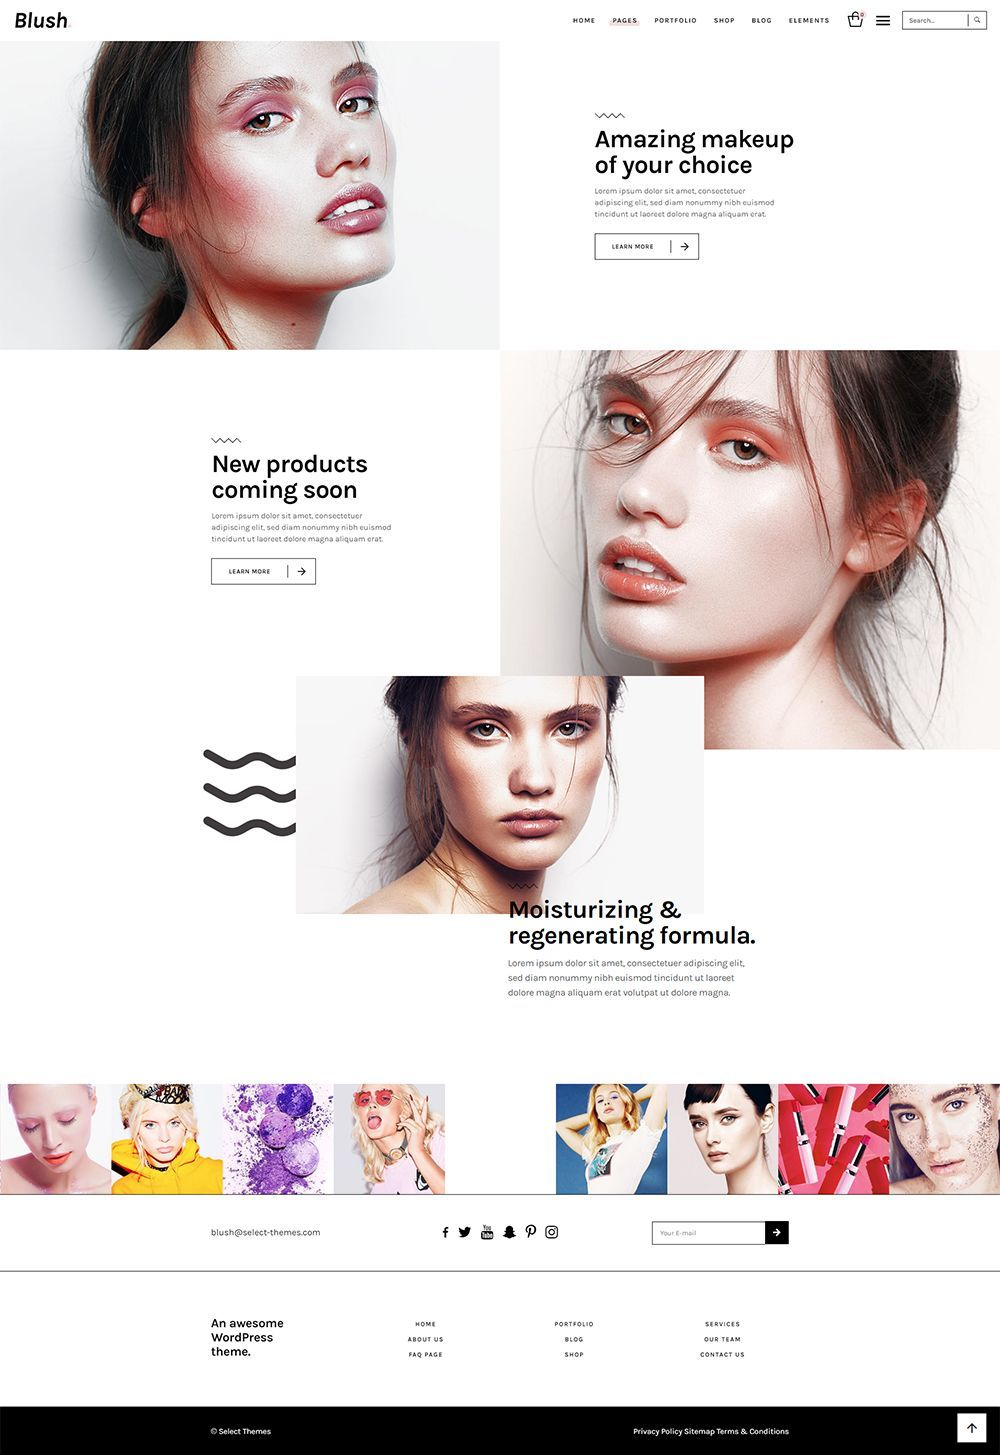 Create a beautiful website today with Blush WordPress theme! #wordpress #theme #design #webdesign #uxdesign #uidesign #responsive #designinspiration #webdesign #wordpresslove #template #layout #websitedesign #branding #websiteideas #webart #webpage #visual